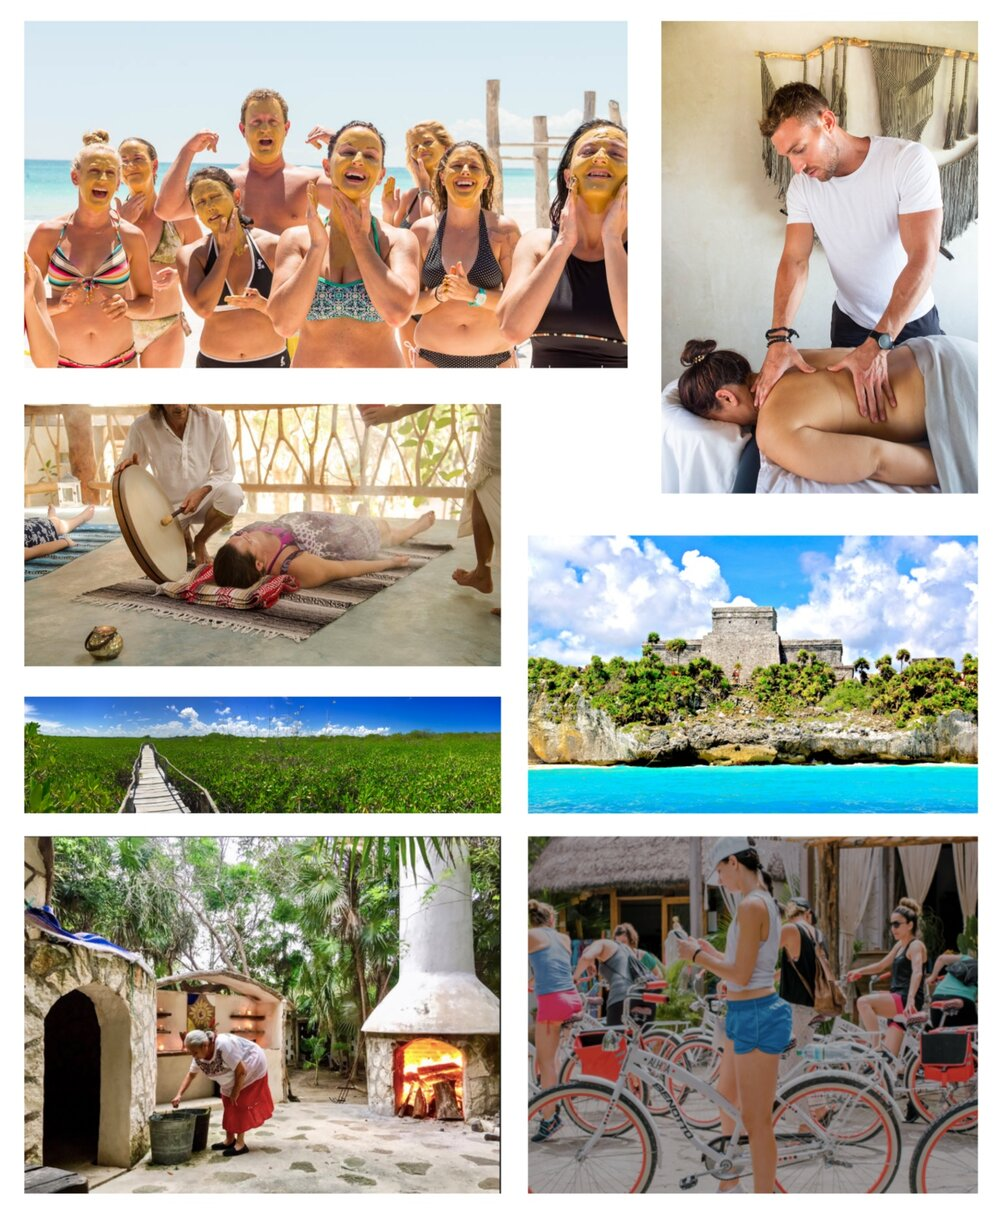 GREAT PLACE TO COME AND PAMPER YOURSELF. - We have an onsite spa just steps away from the house, you can book a group Sound Healing session, Mayan Temazcal or Tour to a local highlight. We just need a minimum of 6 people from your group.